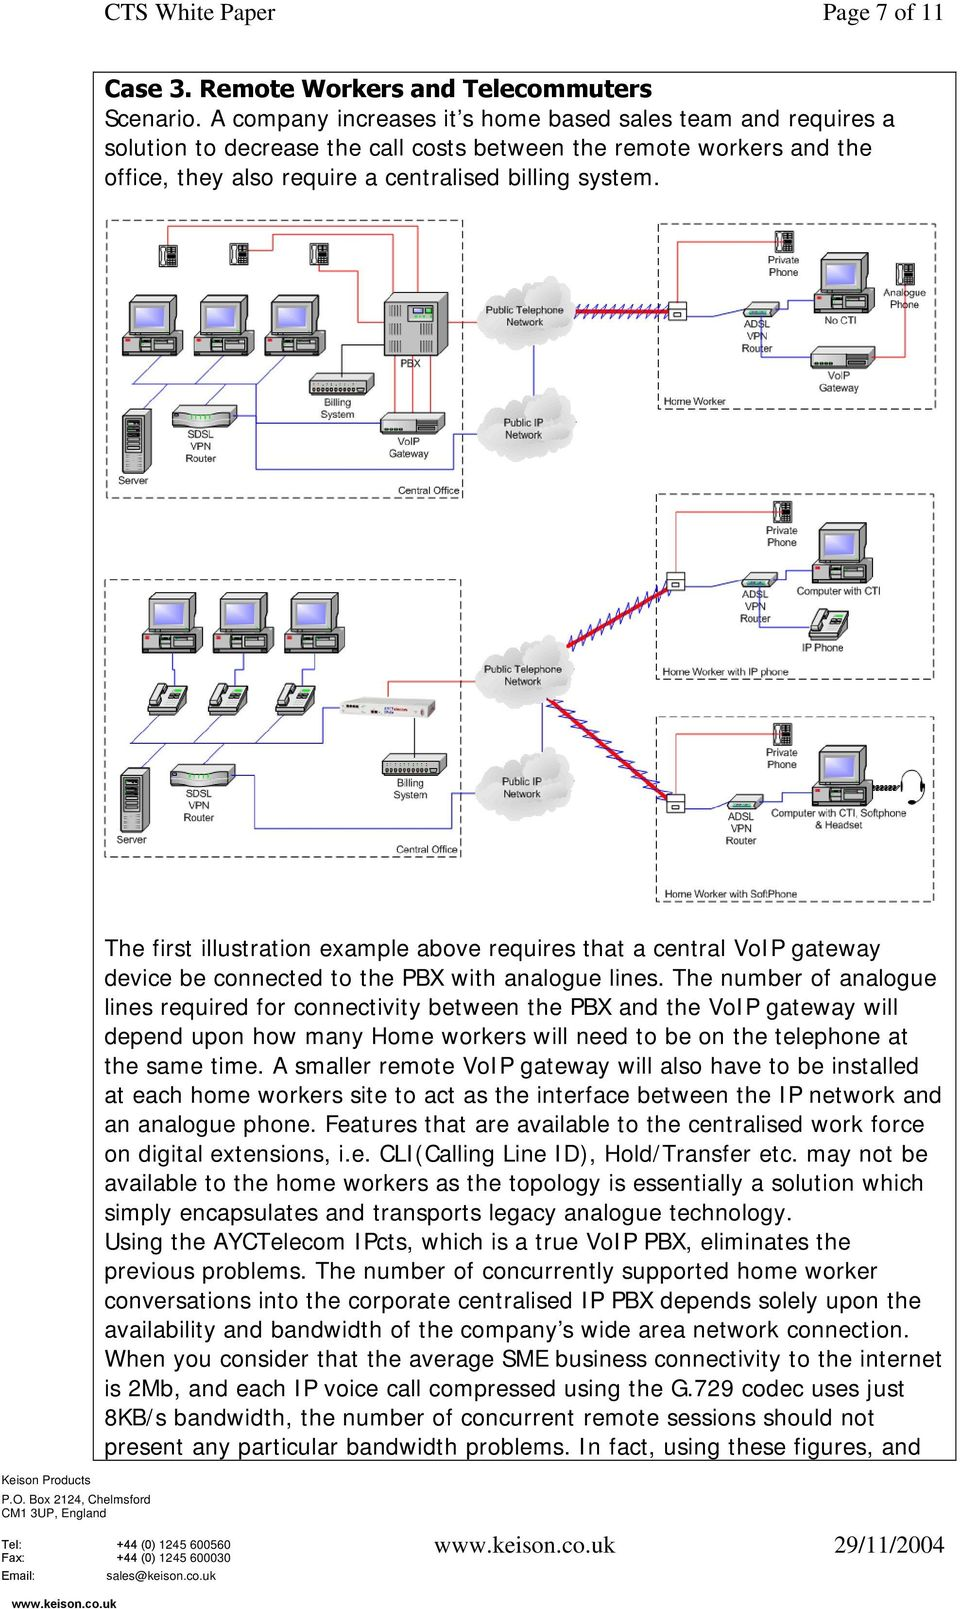 The first illustration example above requires that a central VoIP gateway device be connected to the PBX with analogue lines.